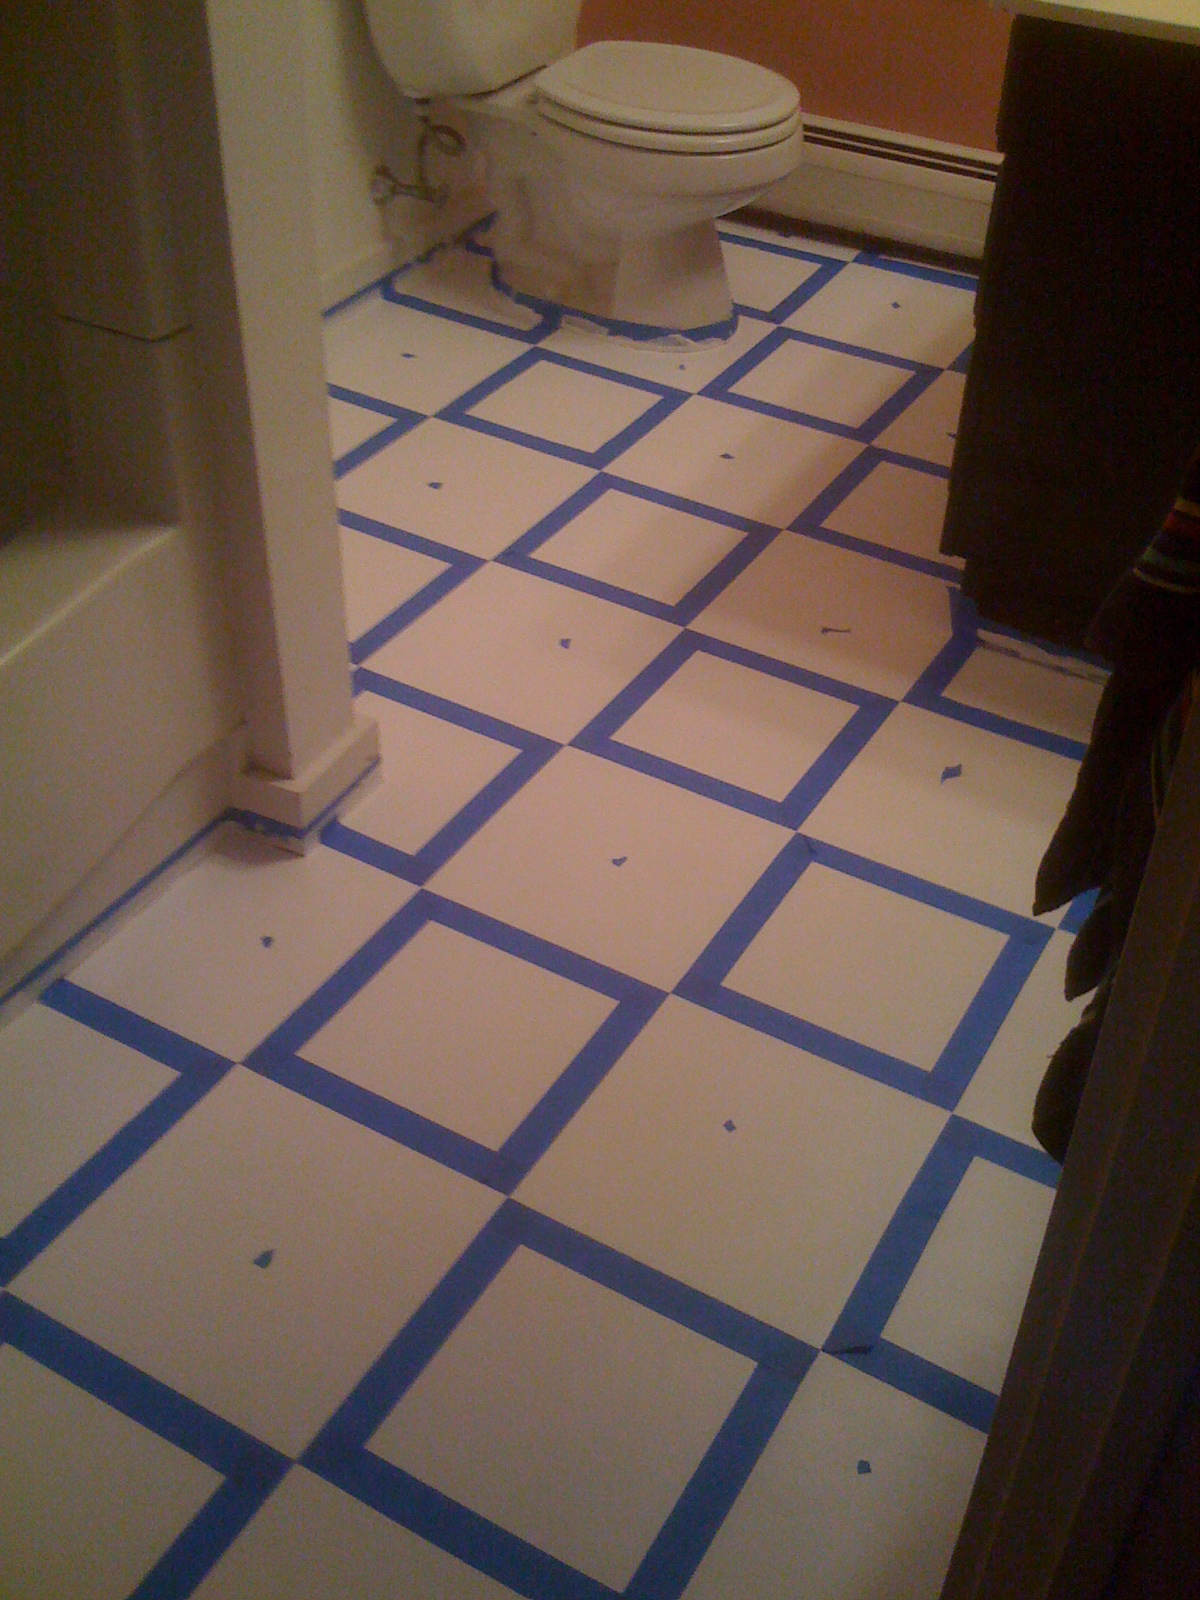 DIY Painting Old Vinyl Floor Tiles Mary Wiseman Designs - Repainting floor tiles